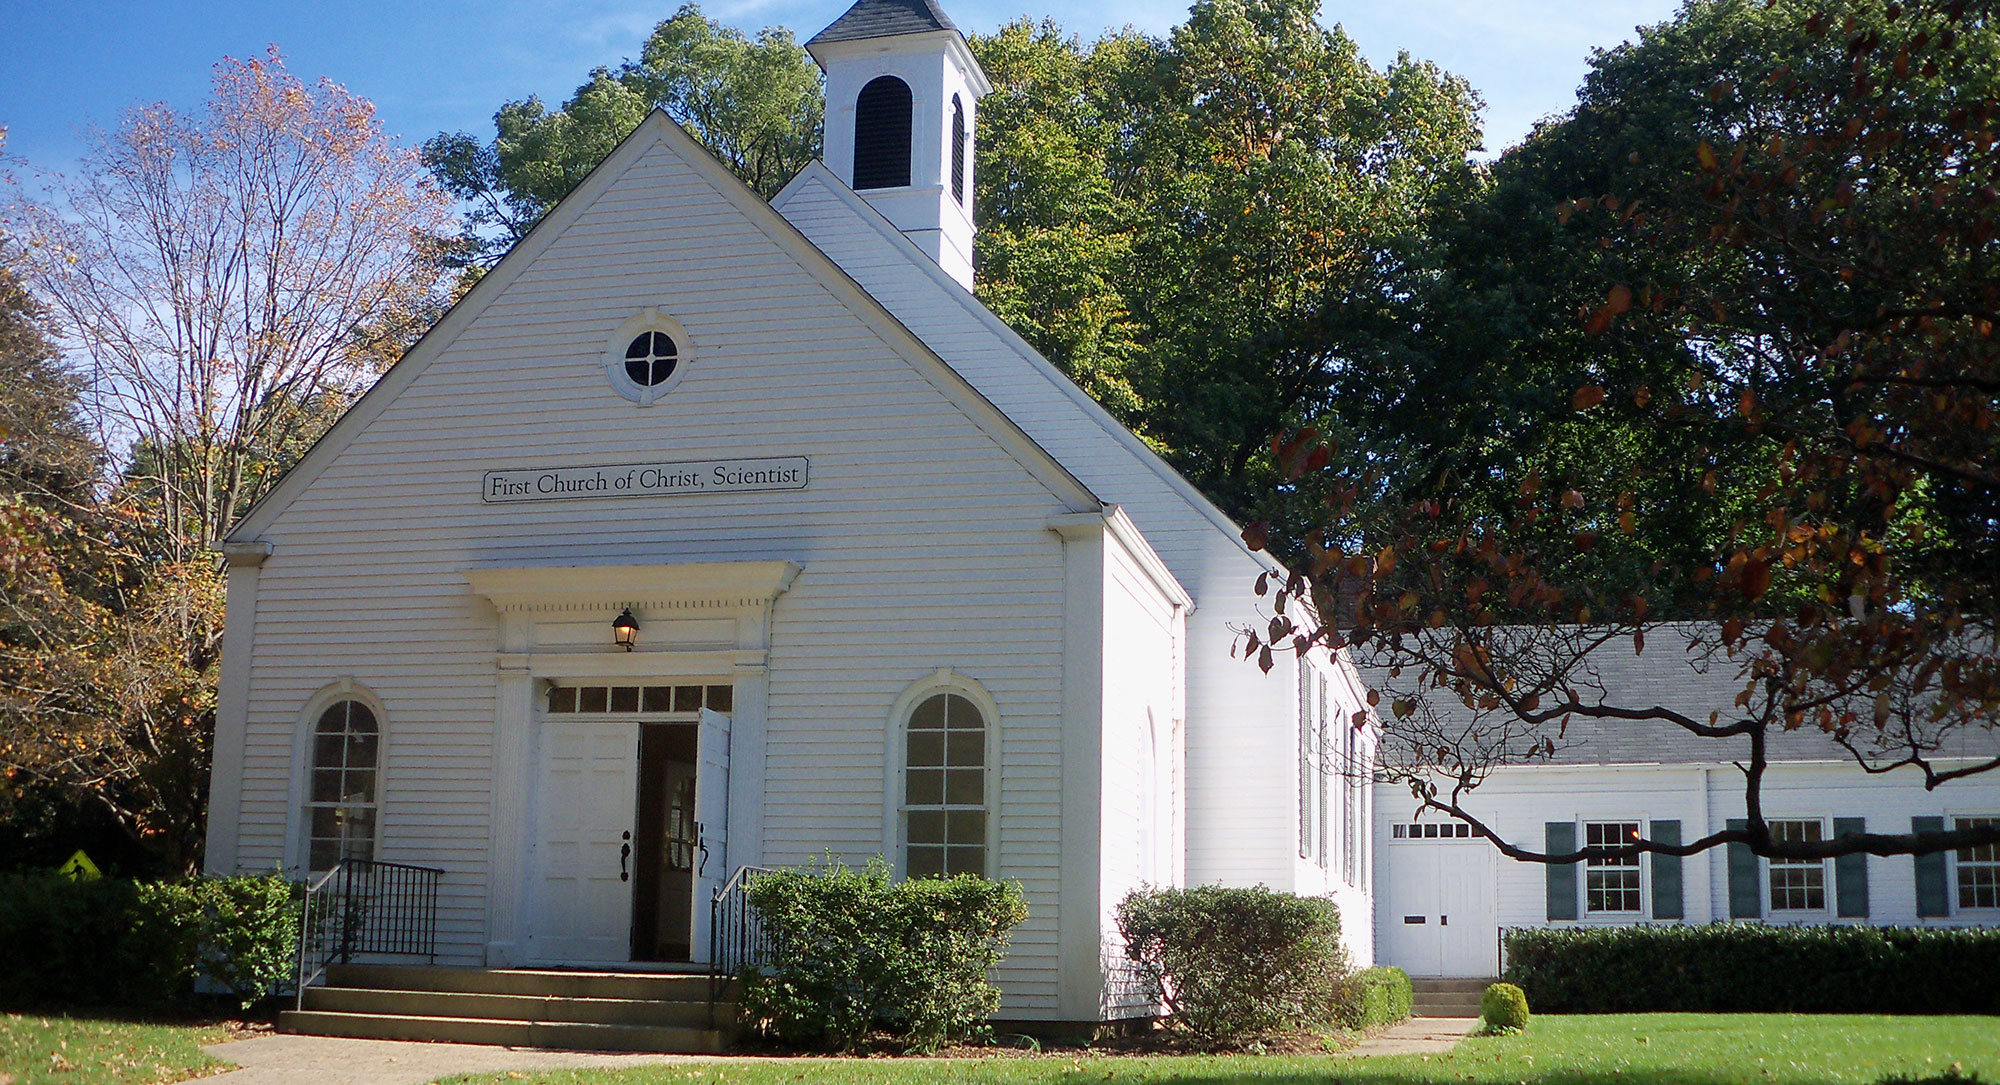 Christian Science in Morristown, NJ – Welcome to a church of